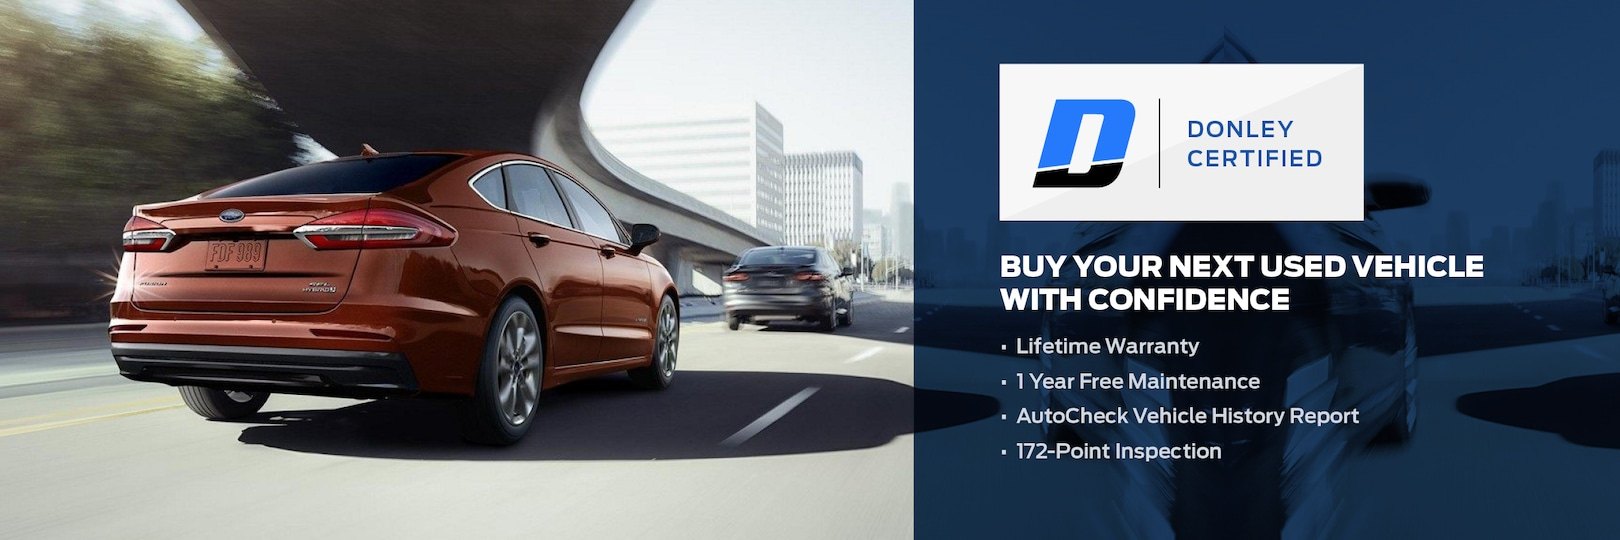 Donley Ford Galion >> Donley Ford of Shelby | Ford Dealer in Shelby, OH